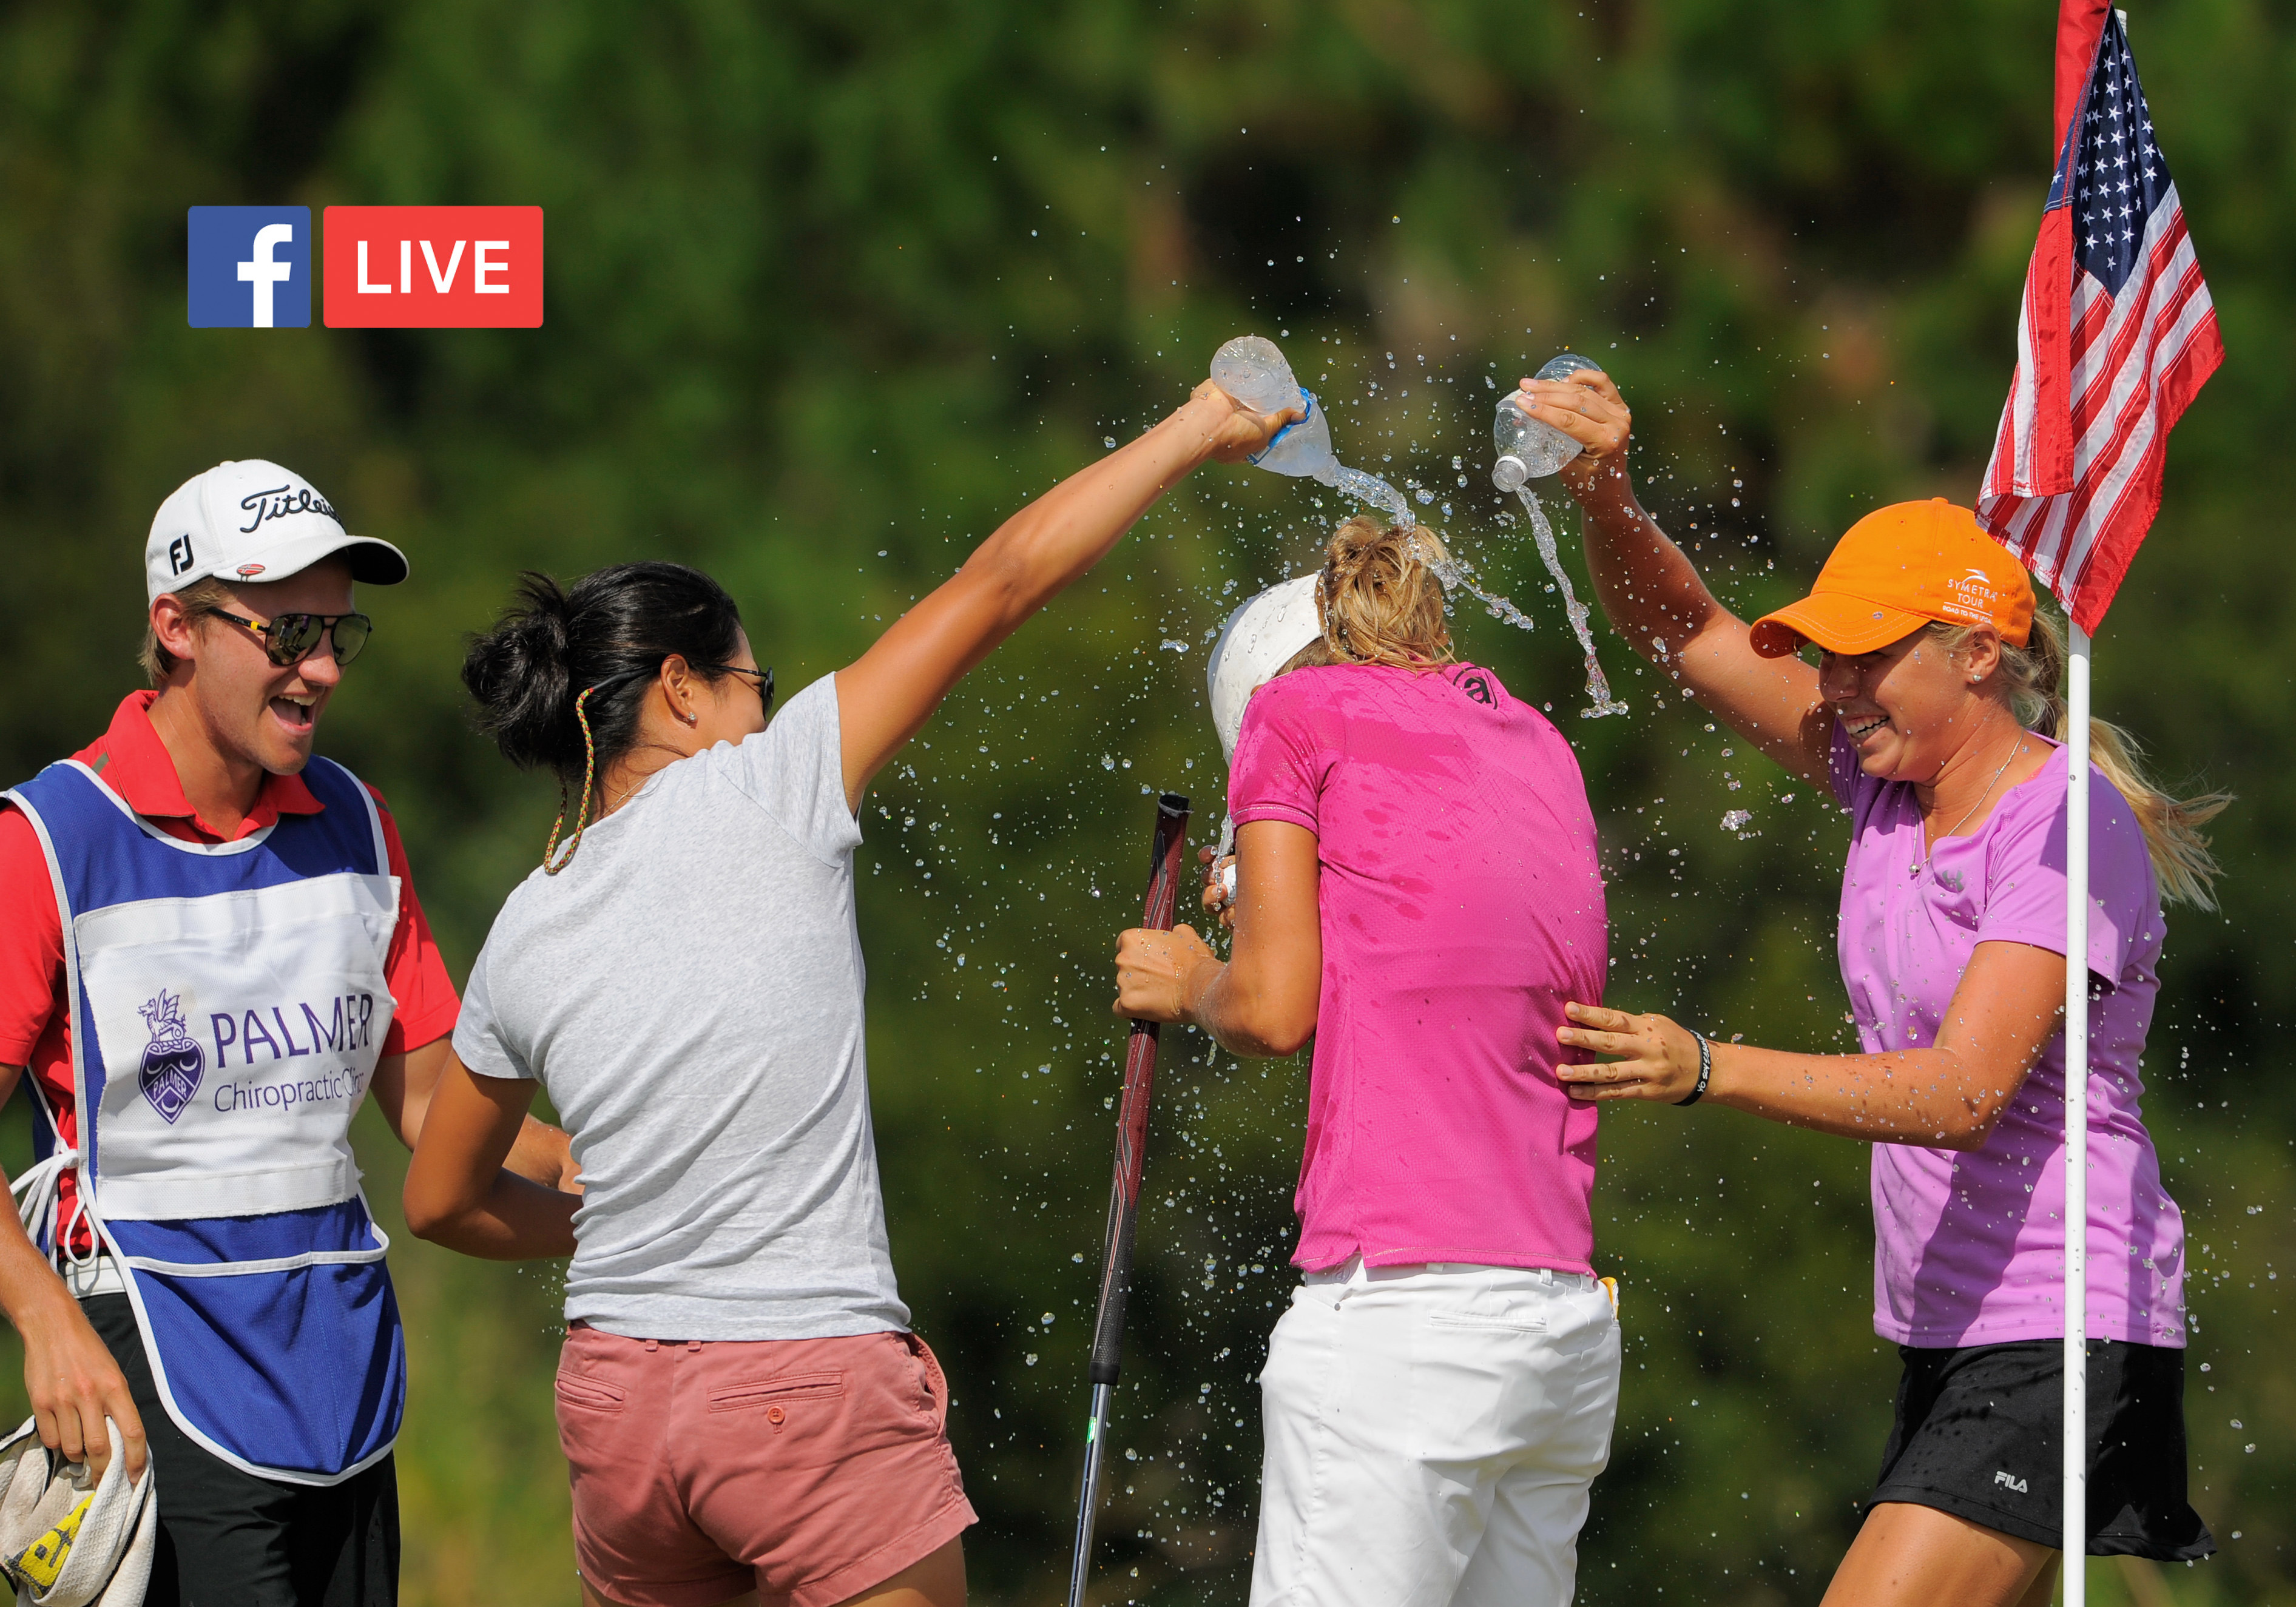 The Symetra Tour is set for their first-ever live broadcast on Facebook Live.